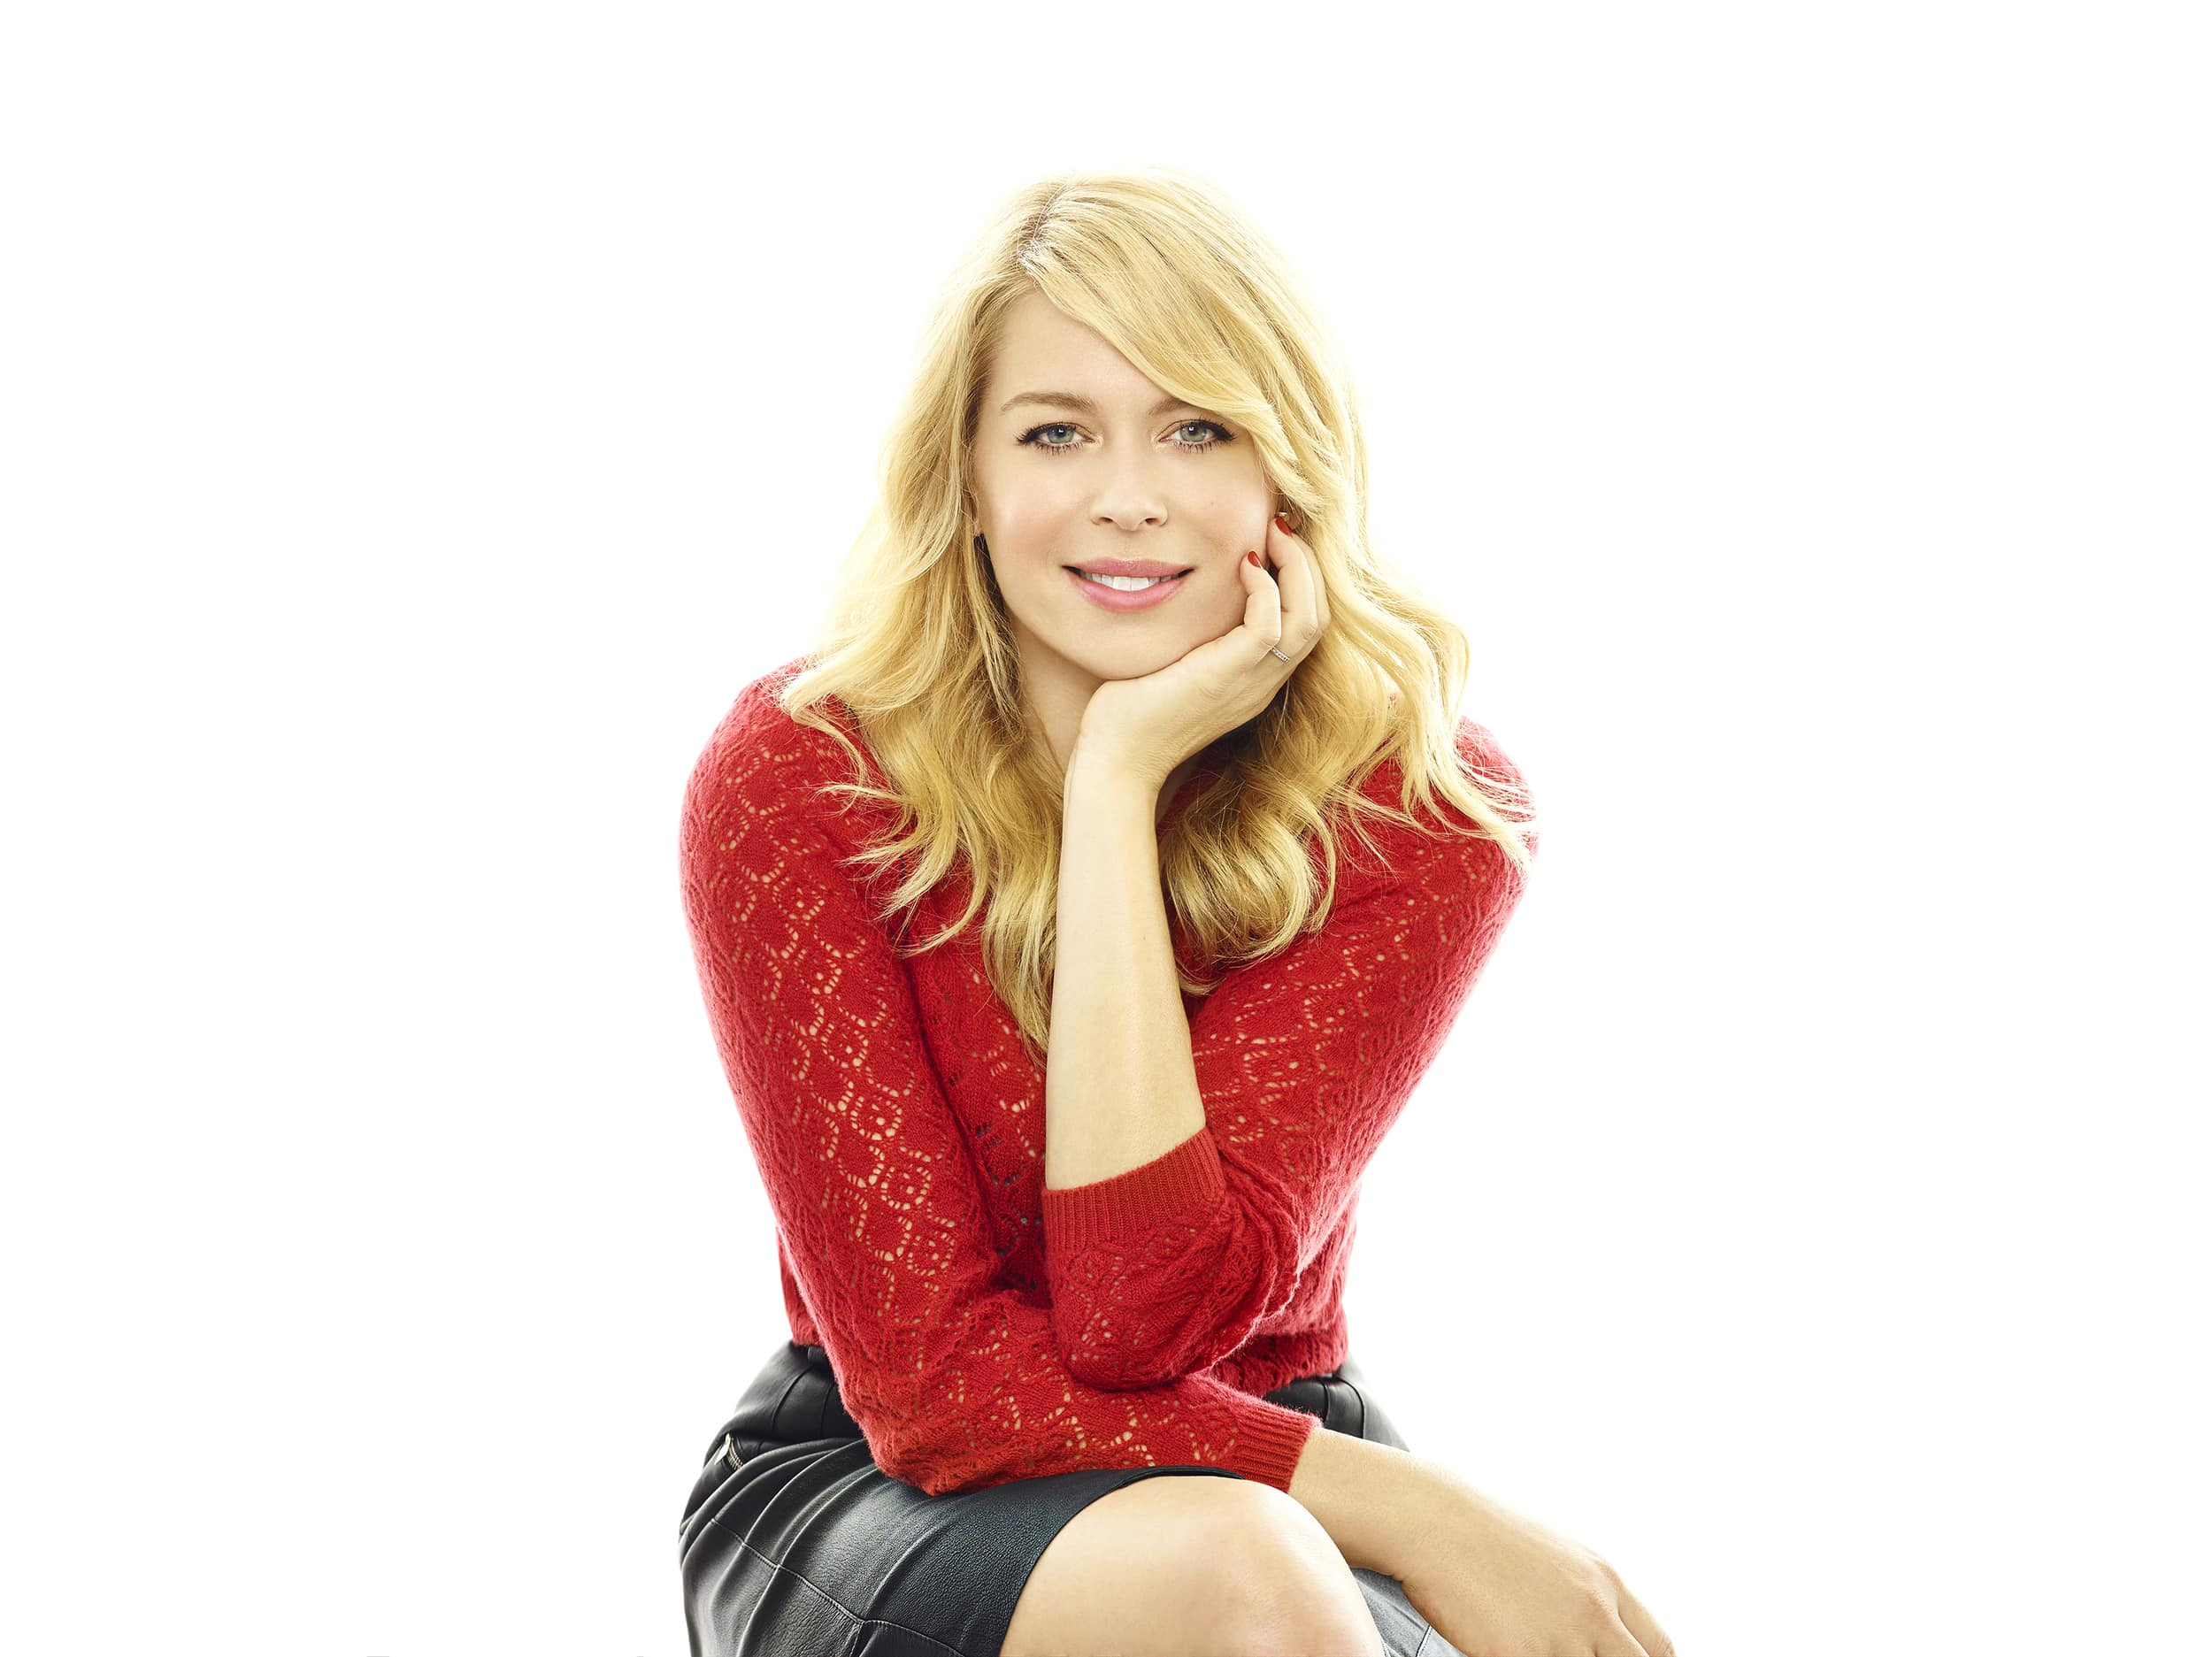 Amanda De Cadenet Wallpapers